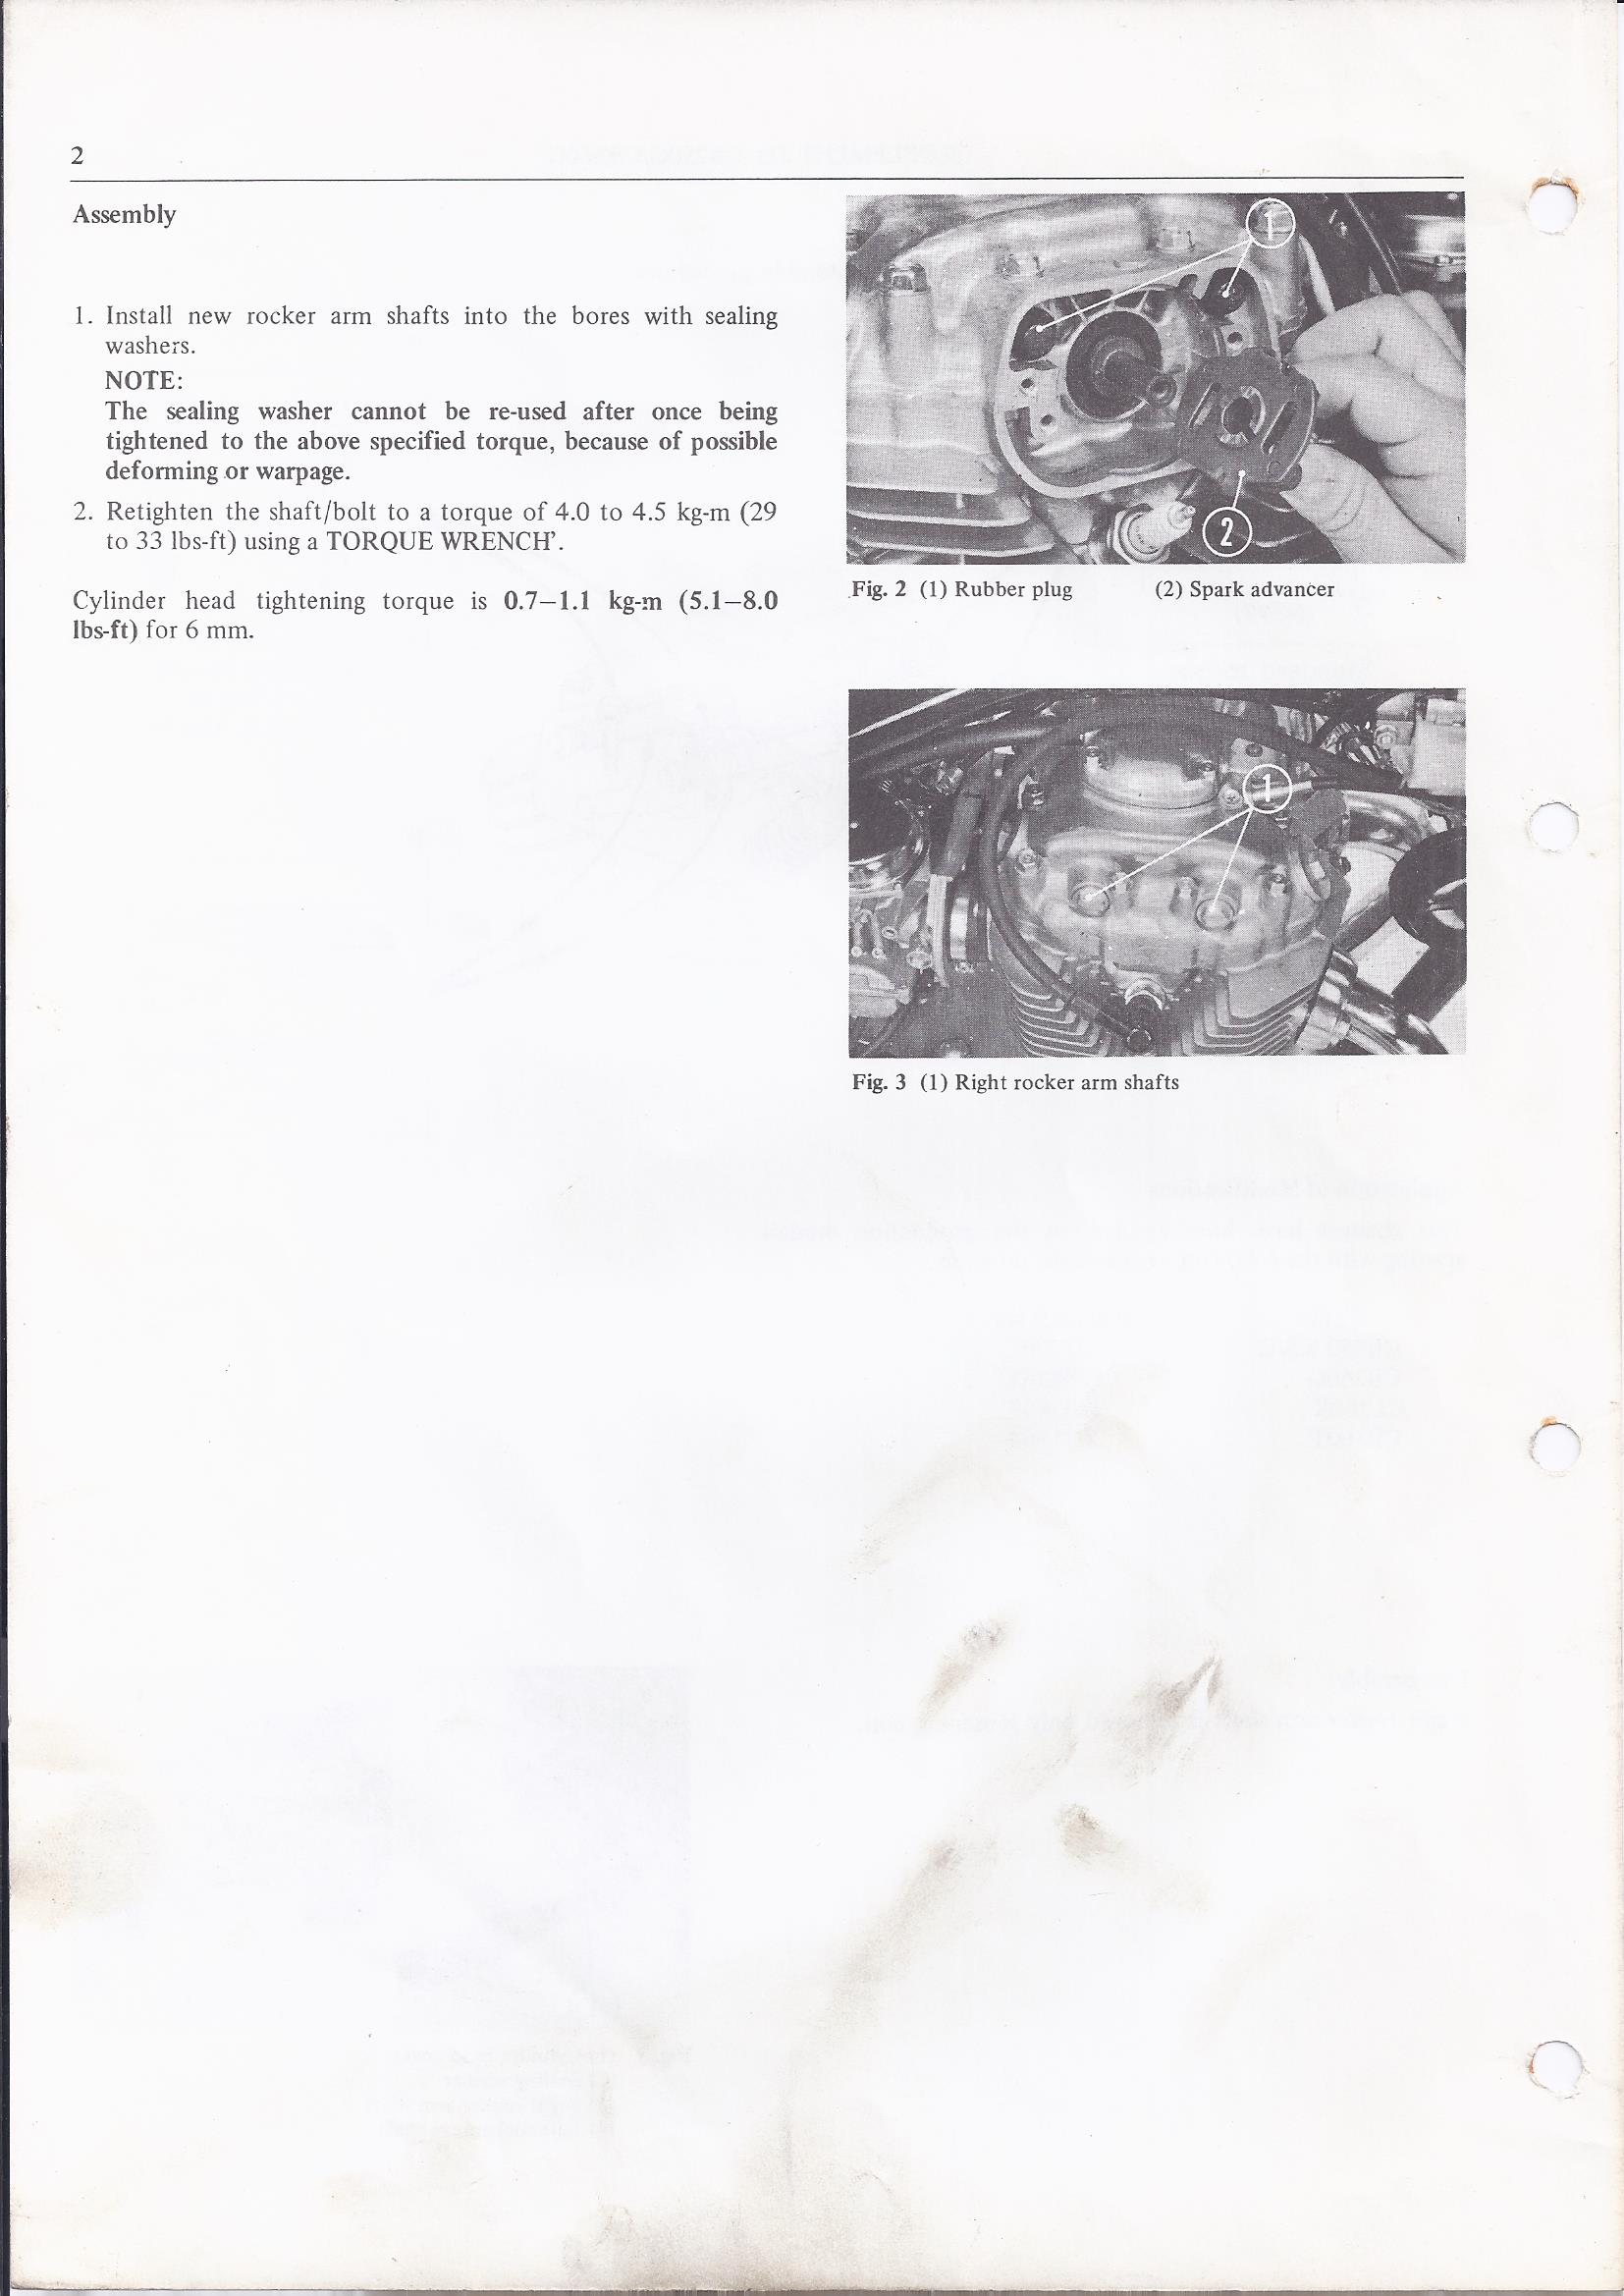 Honda Documents for CB250 and CB360 G5 UK Model known as